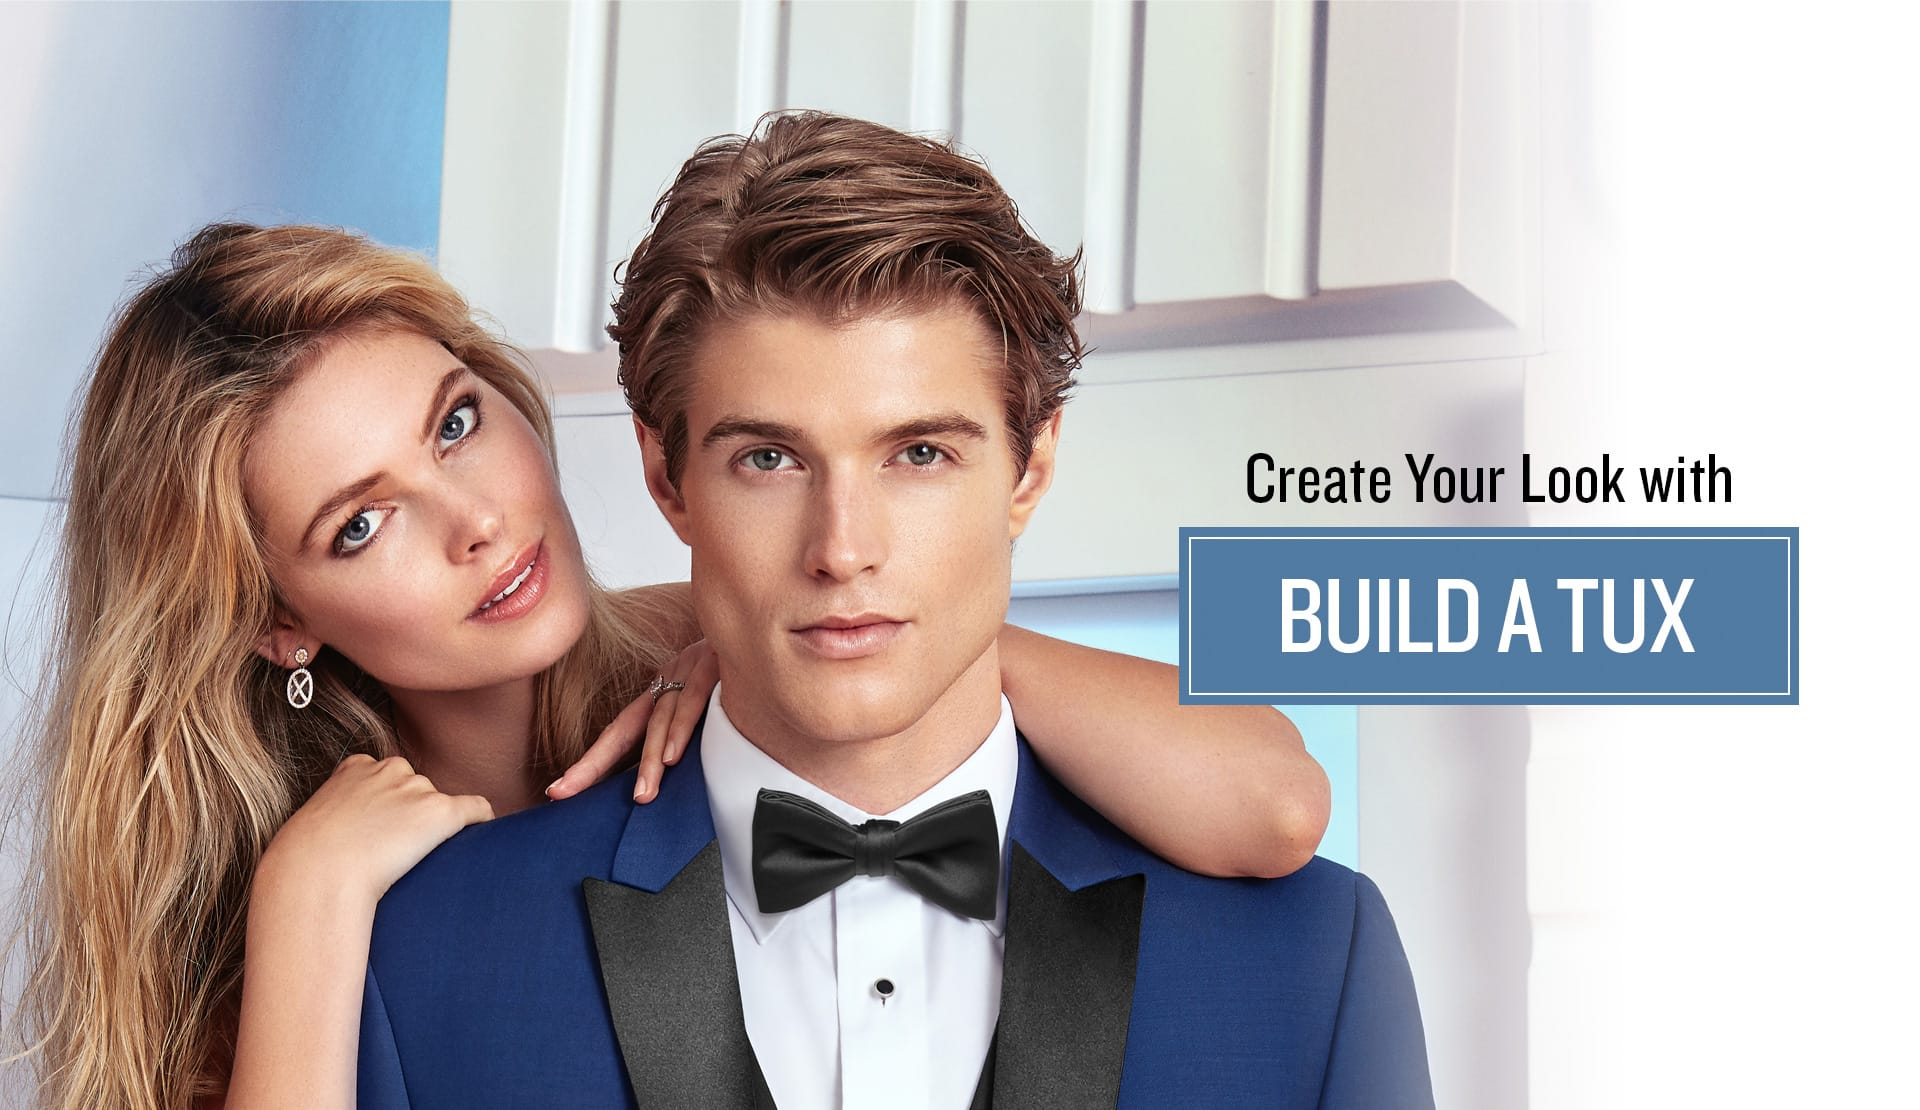 Use Build a Tux to create a tuxedo for your event